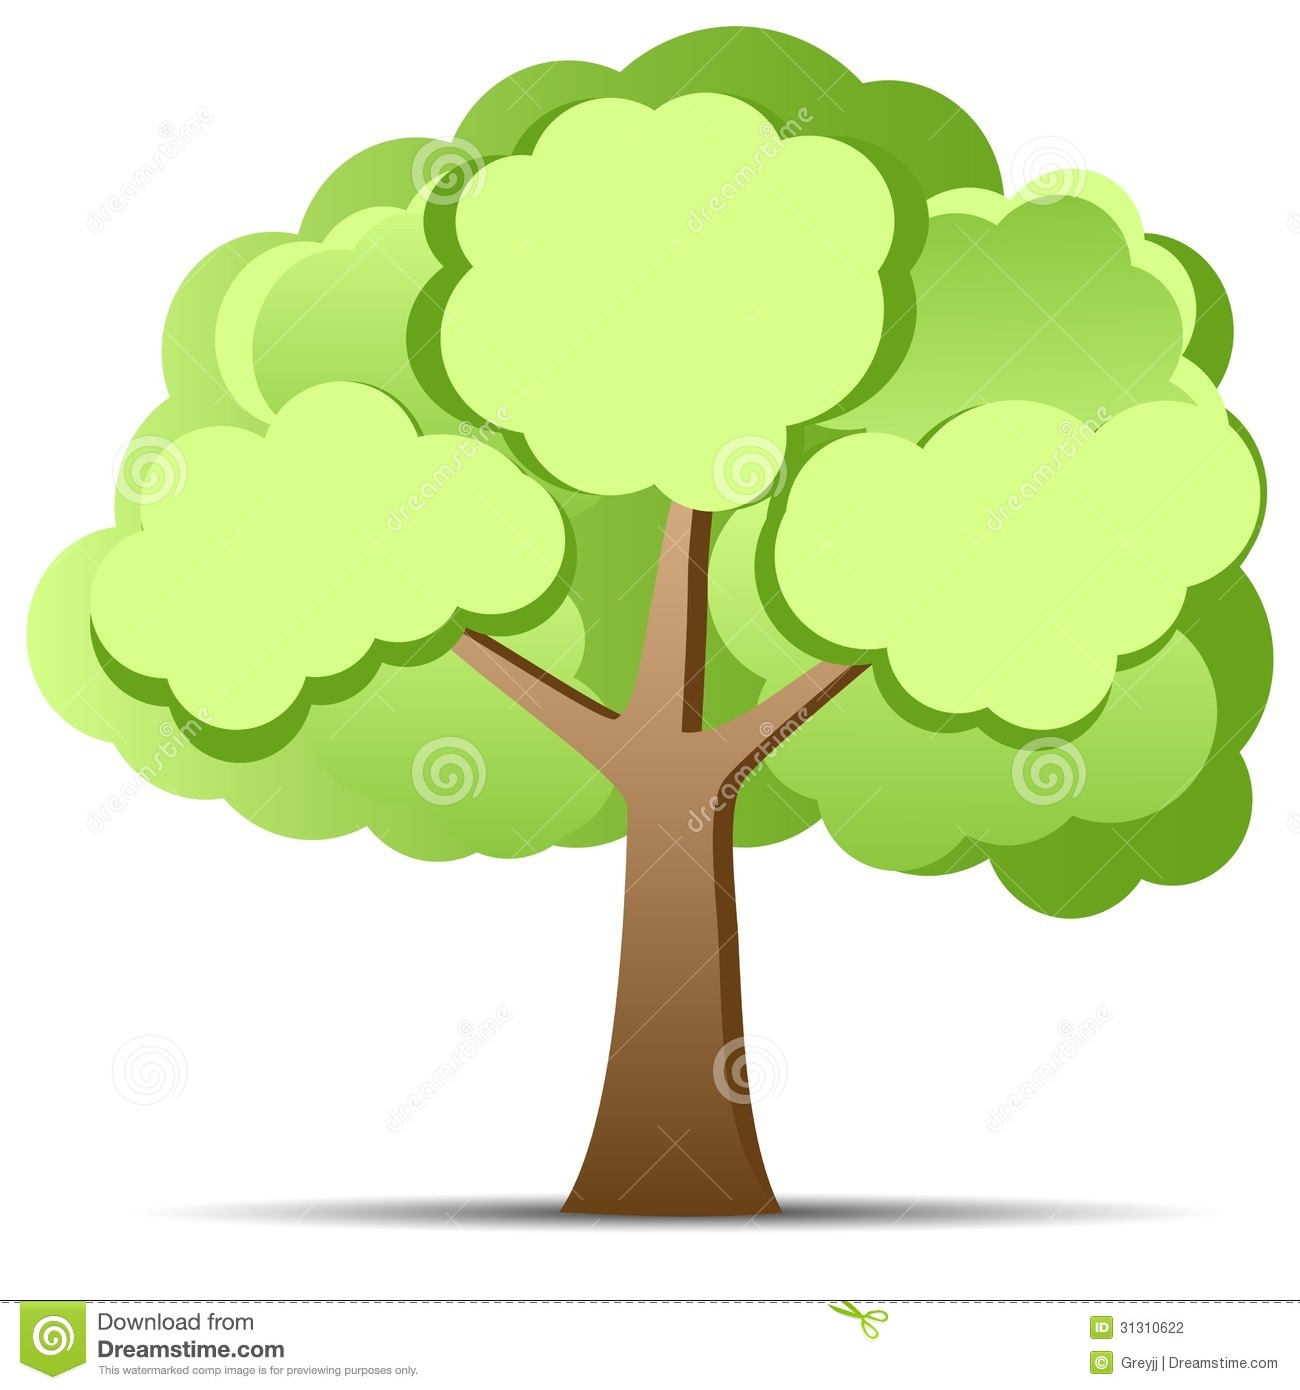 Green Tree Stock Photography - Image: 31310622